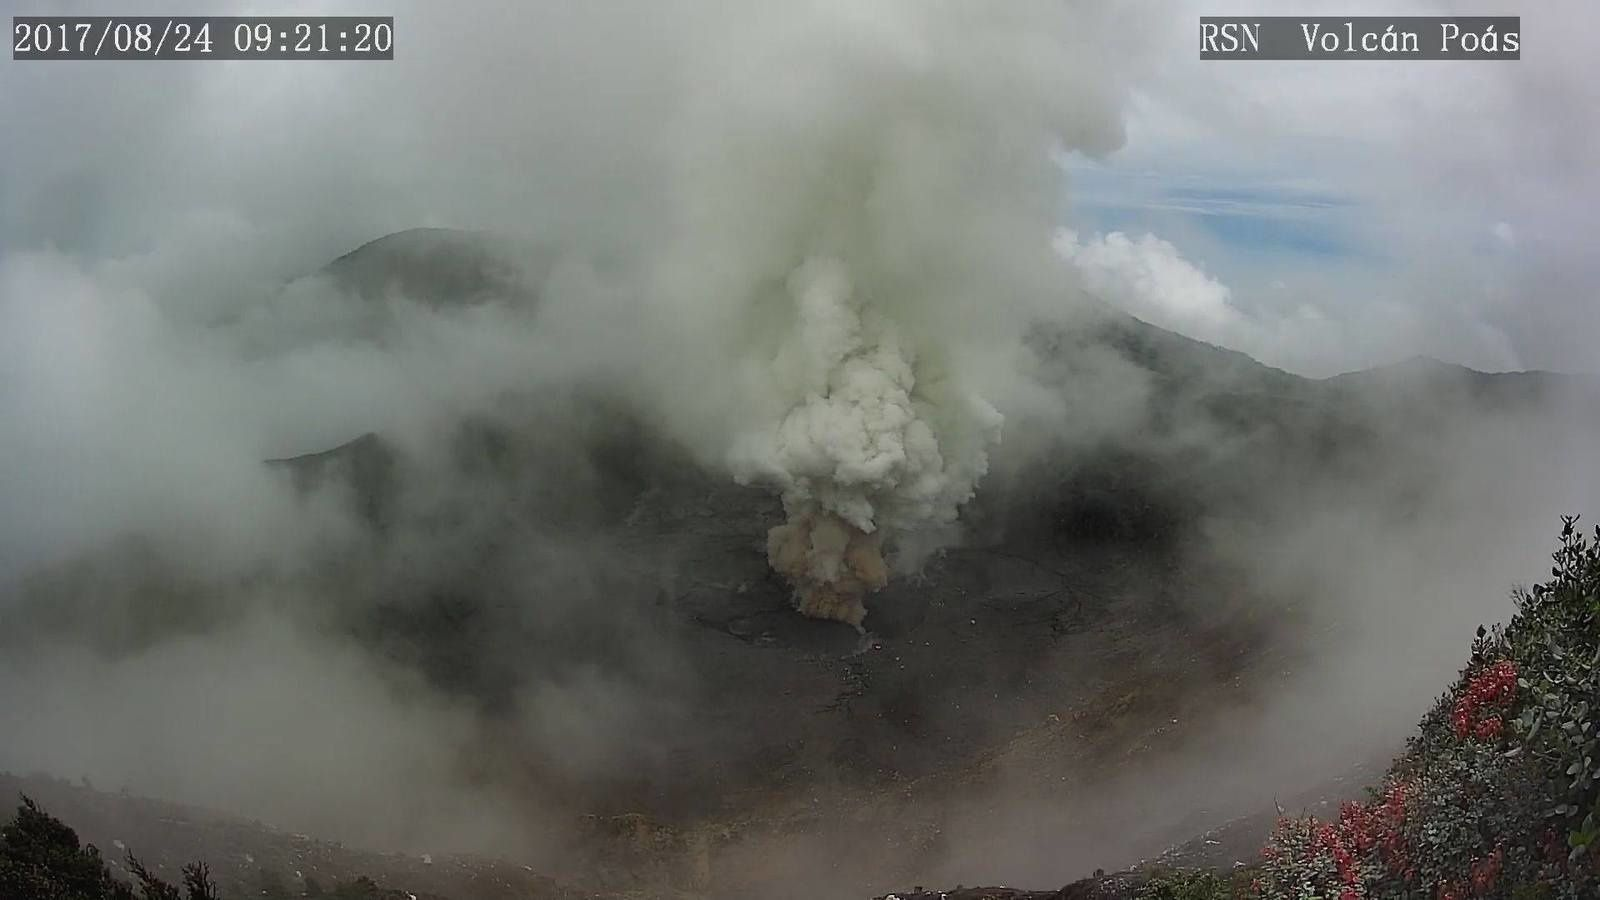 Poas - 24.08.2017, respectively at 9:21 am and 9:23 am - webcam RSN